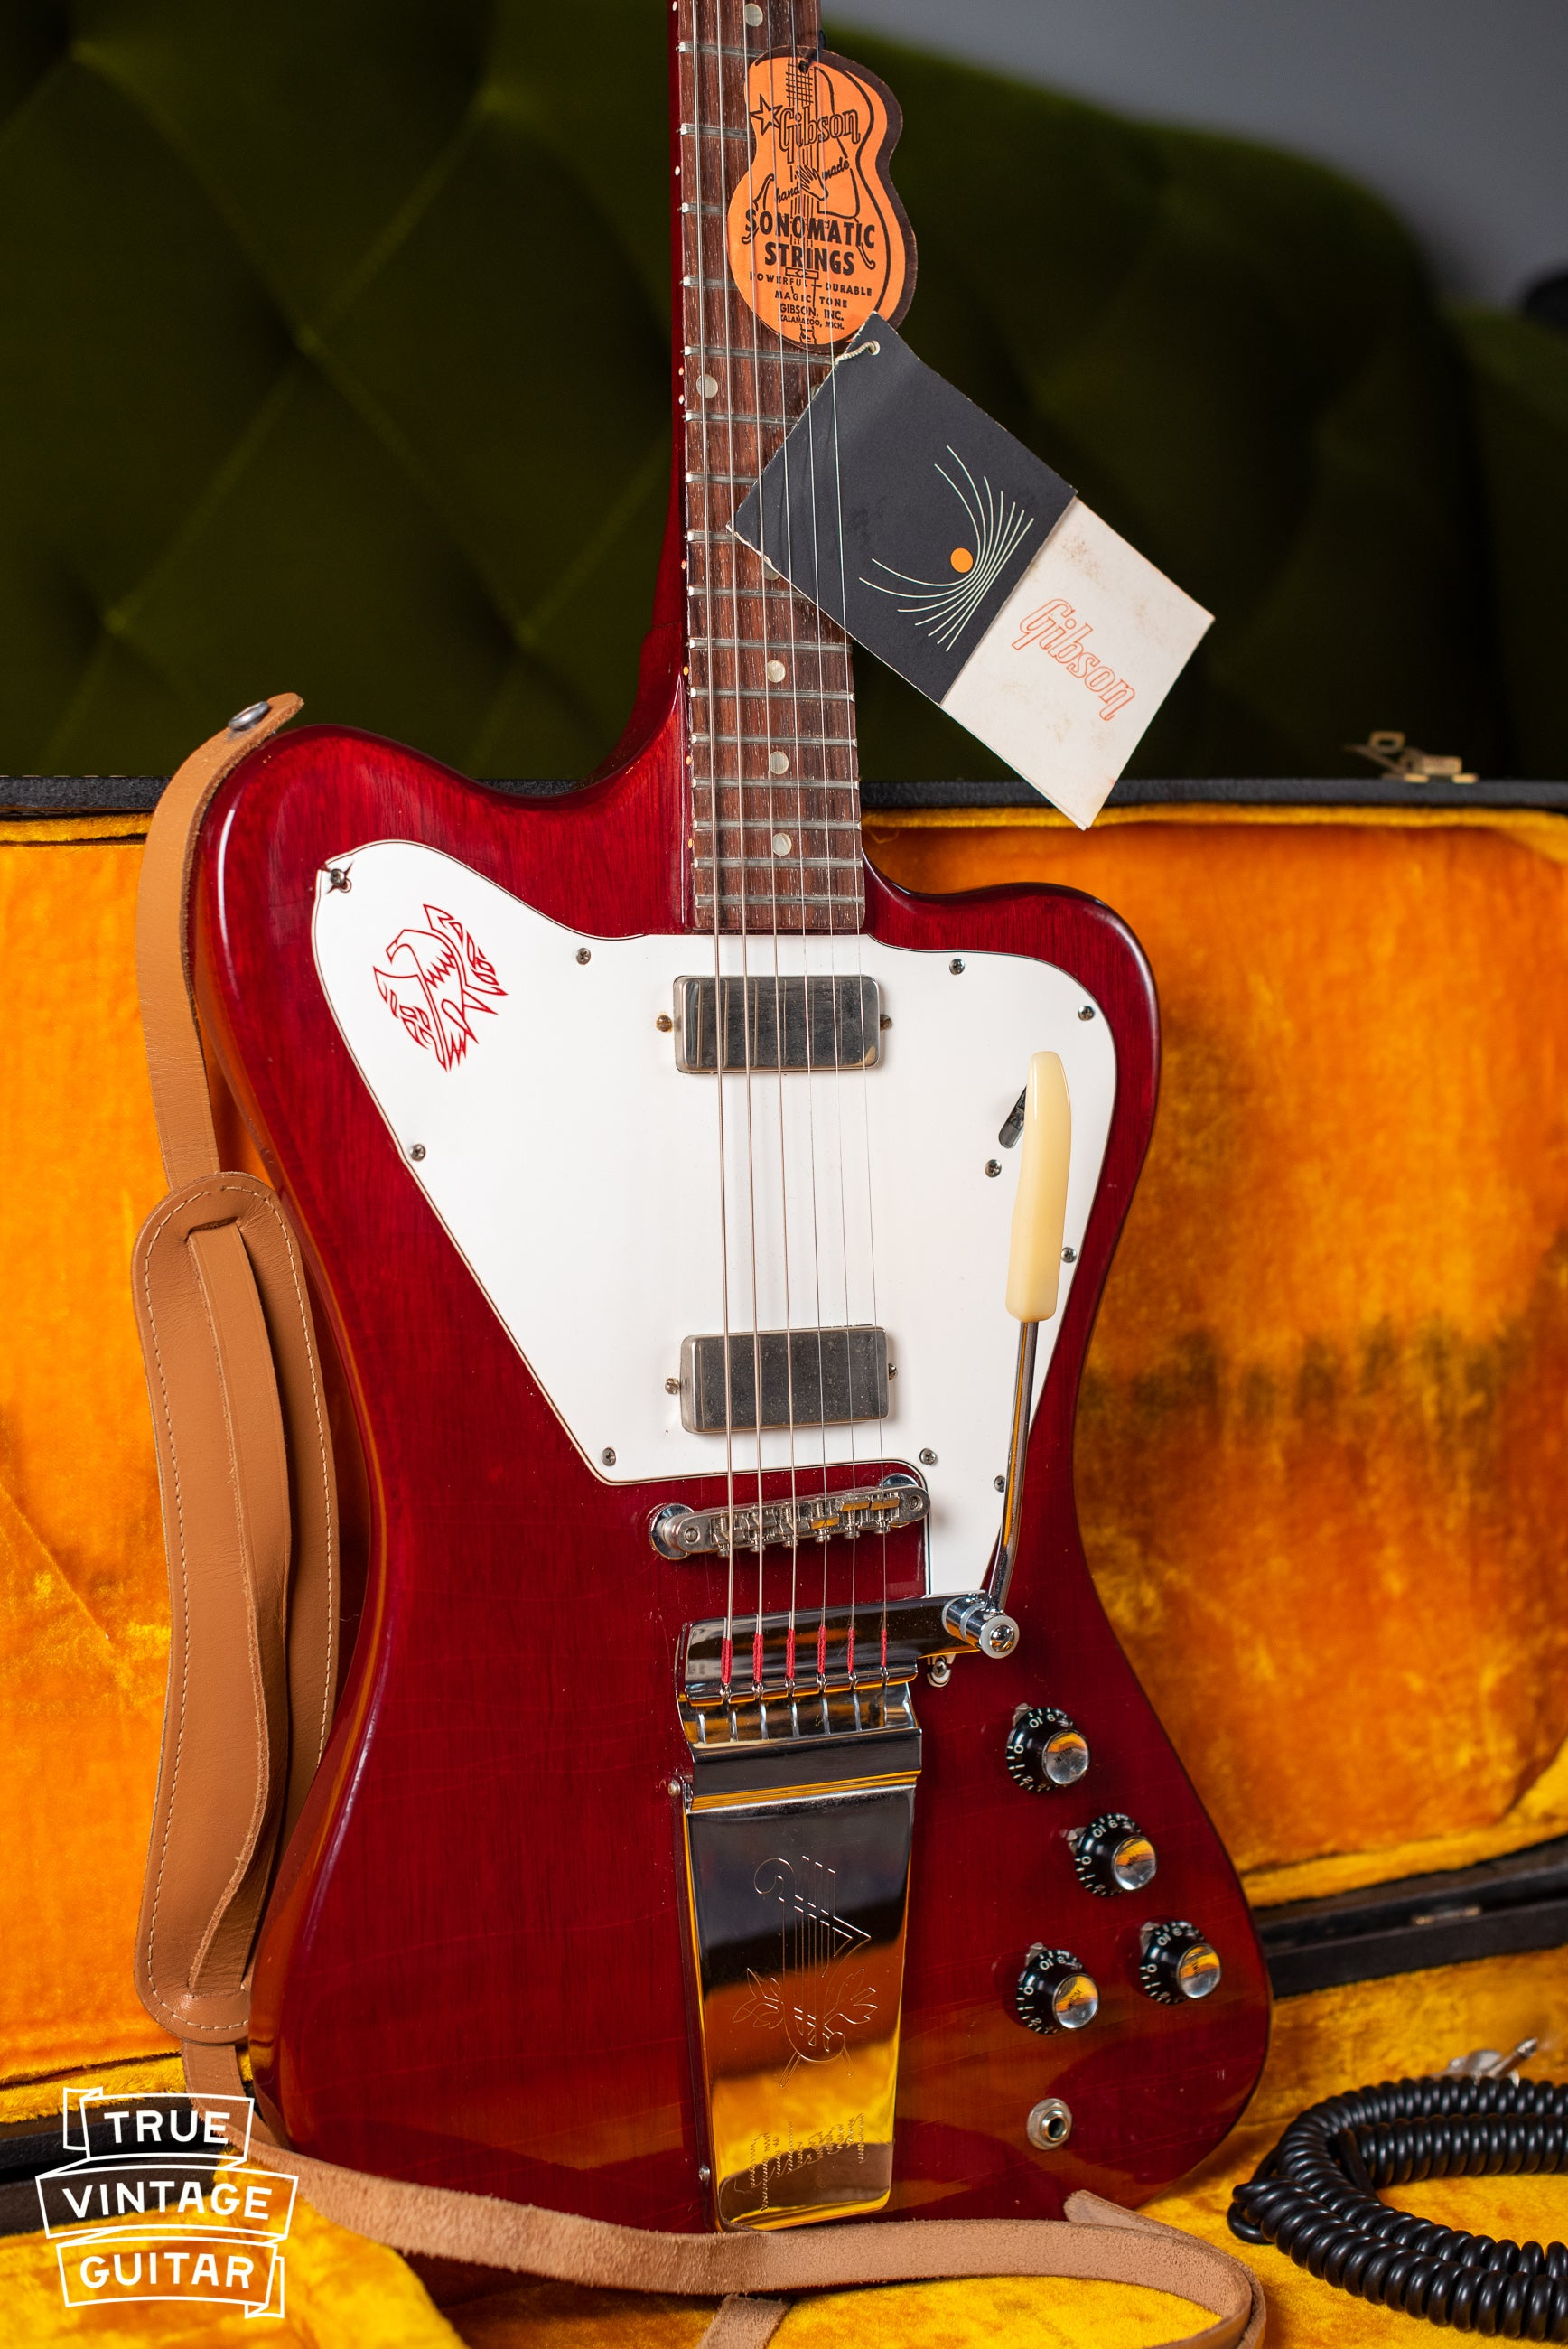 Vintage 1965 Gibson Firebird V Cherry Red electric guitar